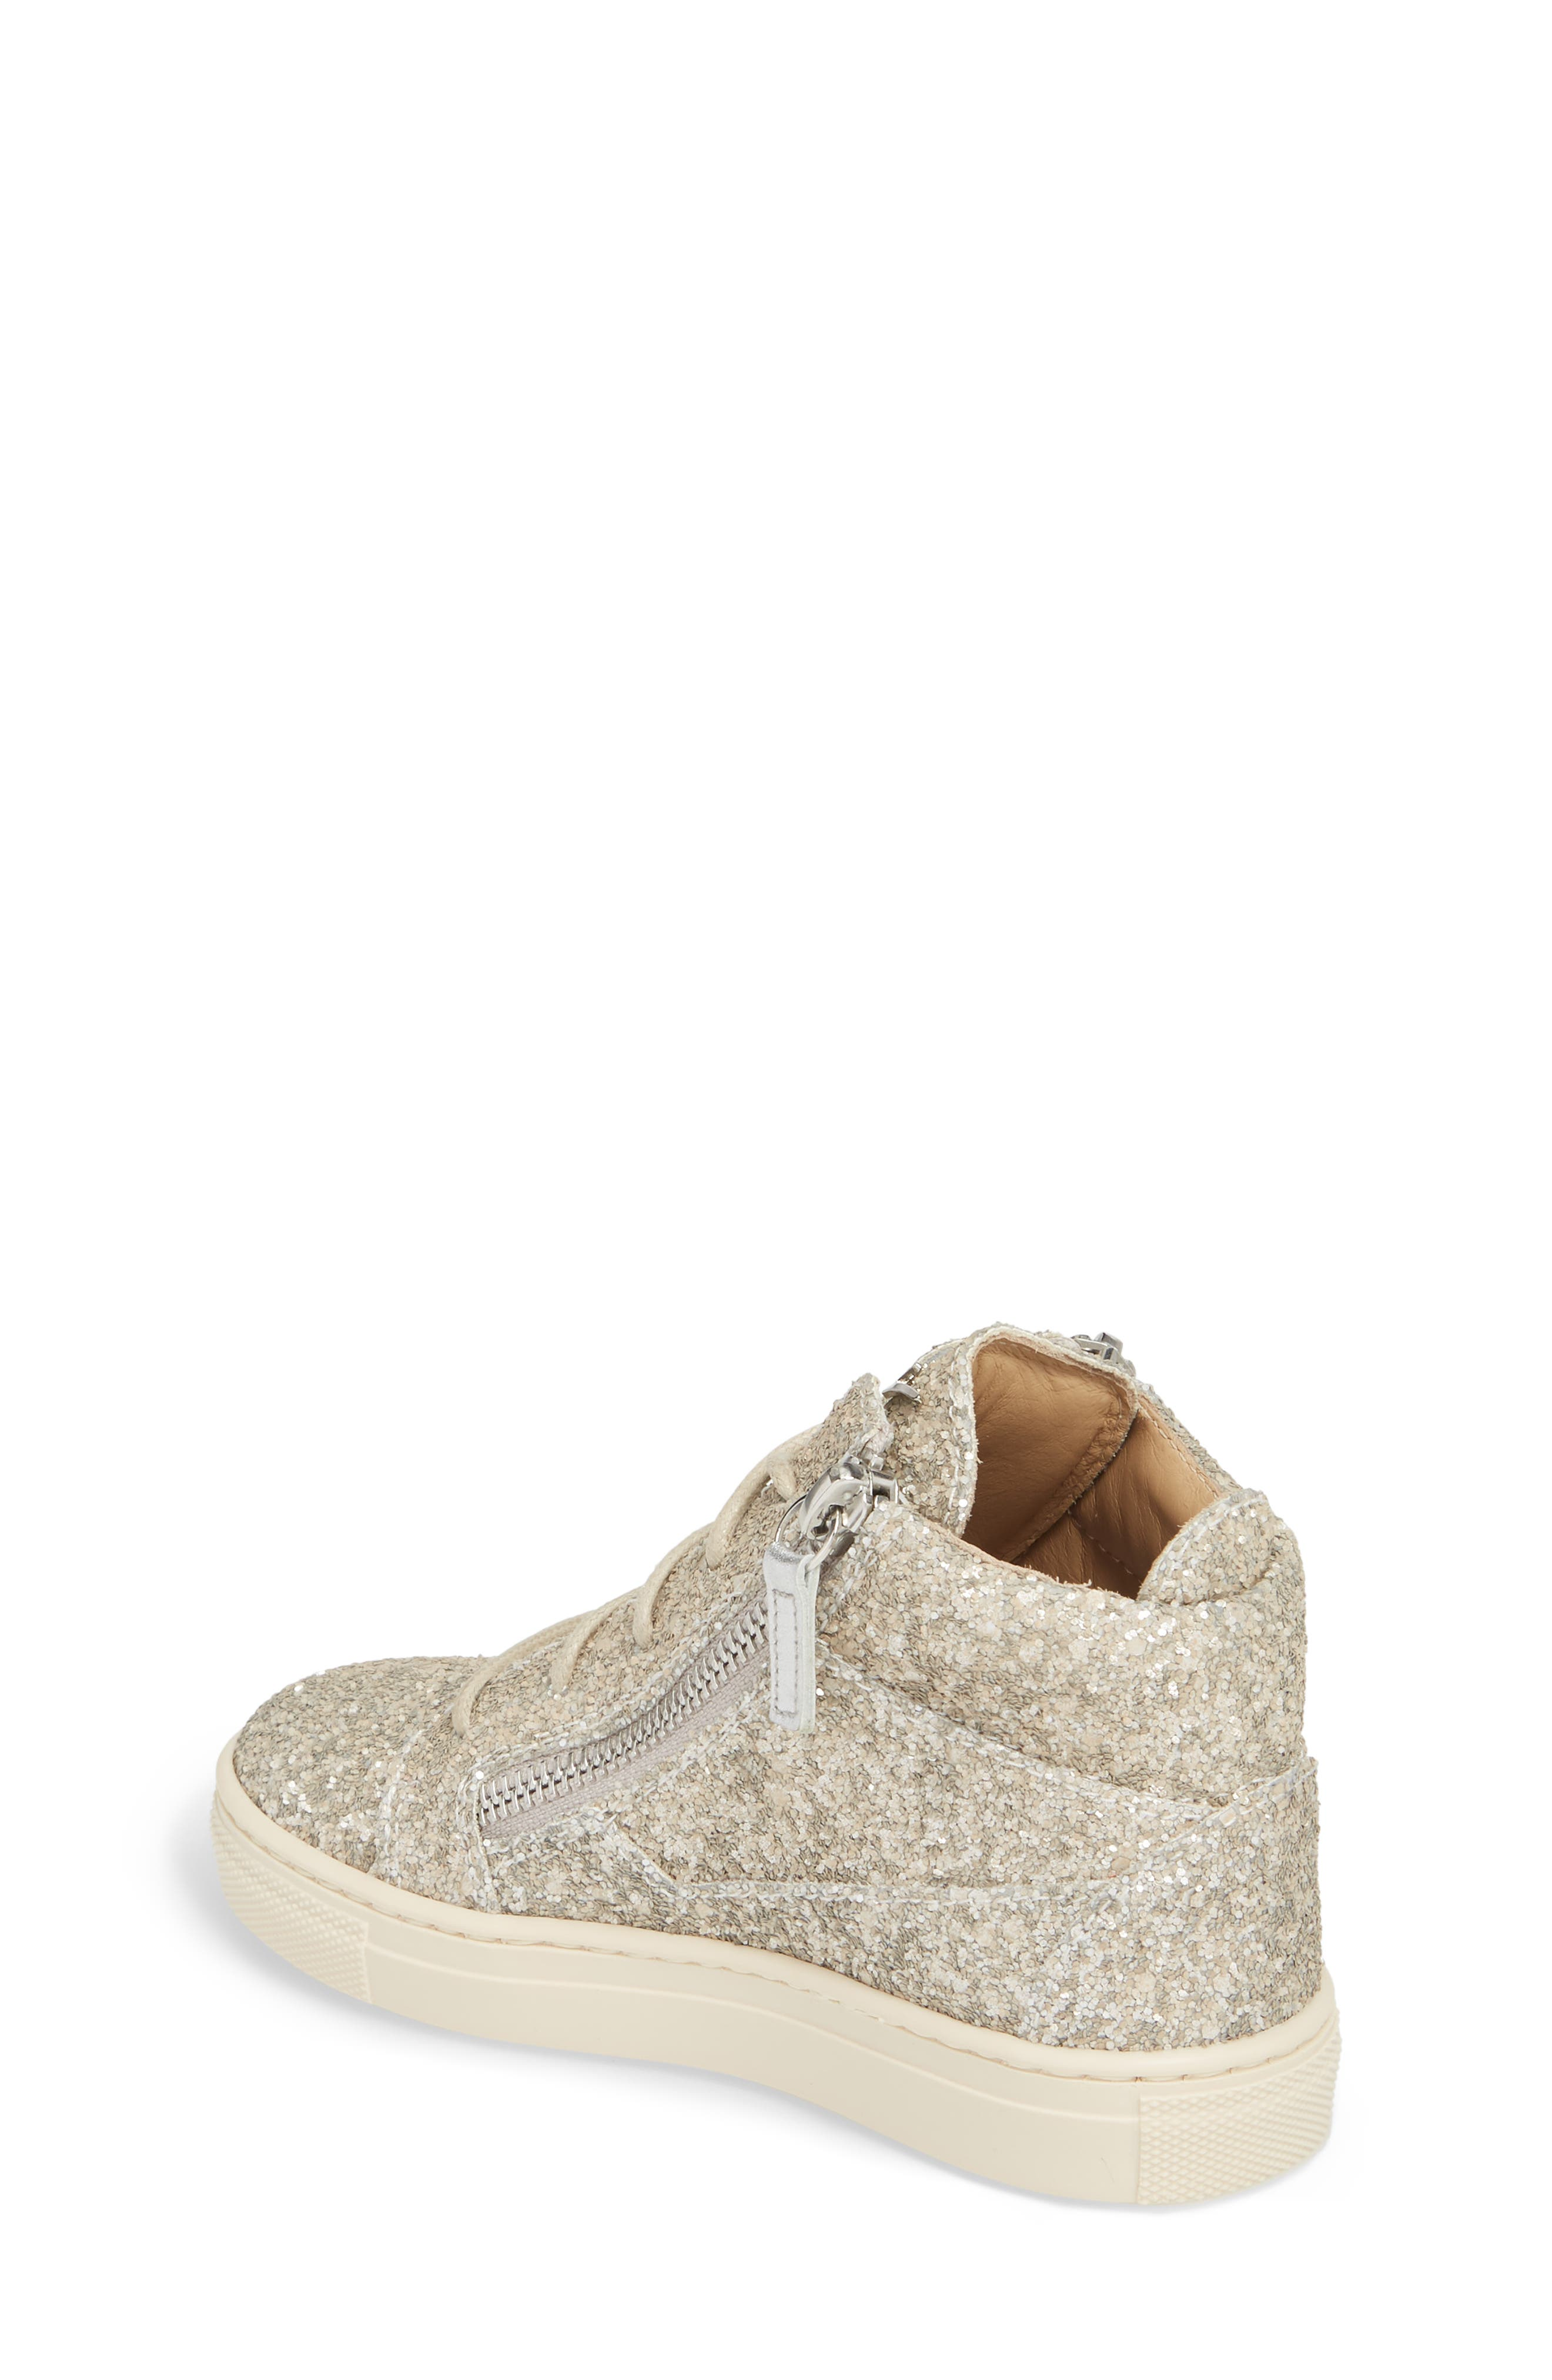 Natalie High Top Sneaker,                             Alternate thumbnail 2, color,                             Silver Glitter